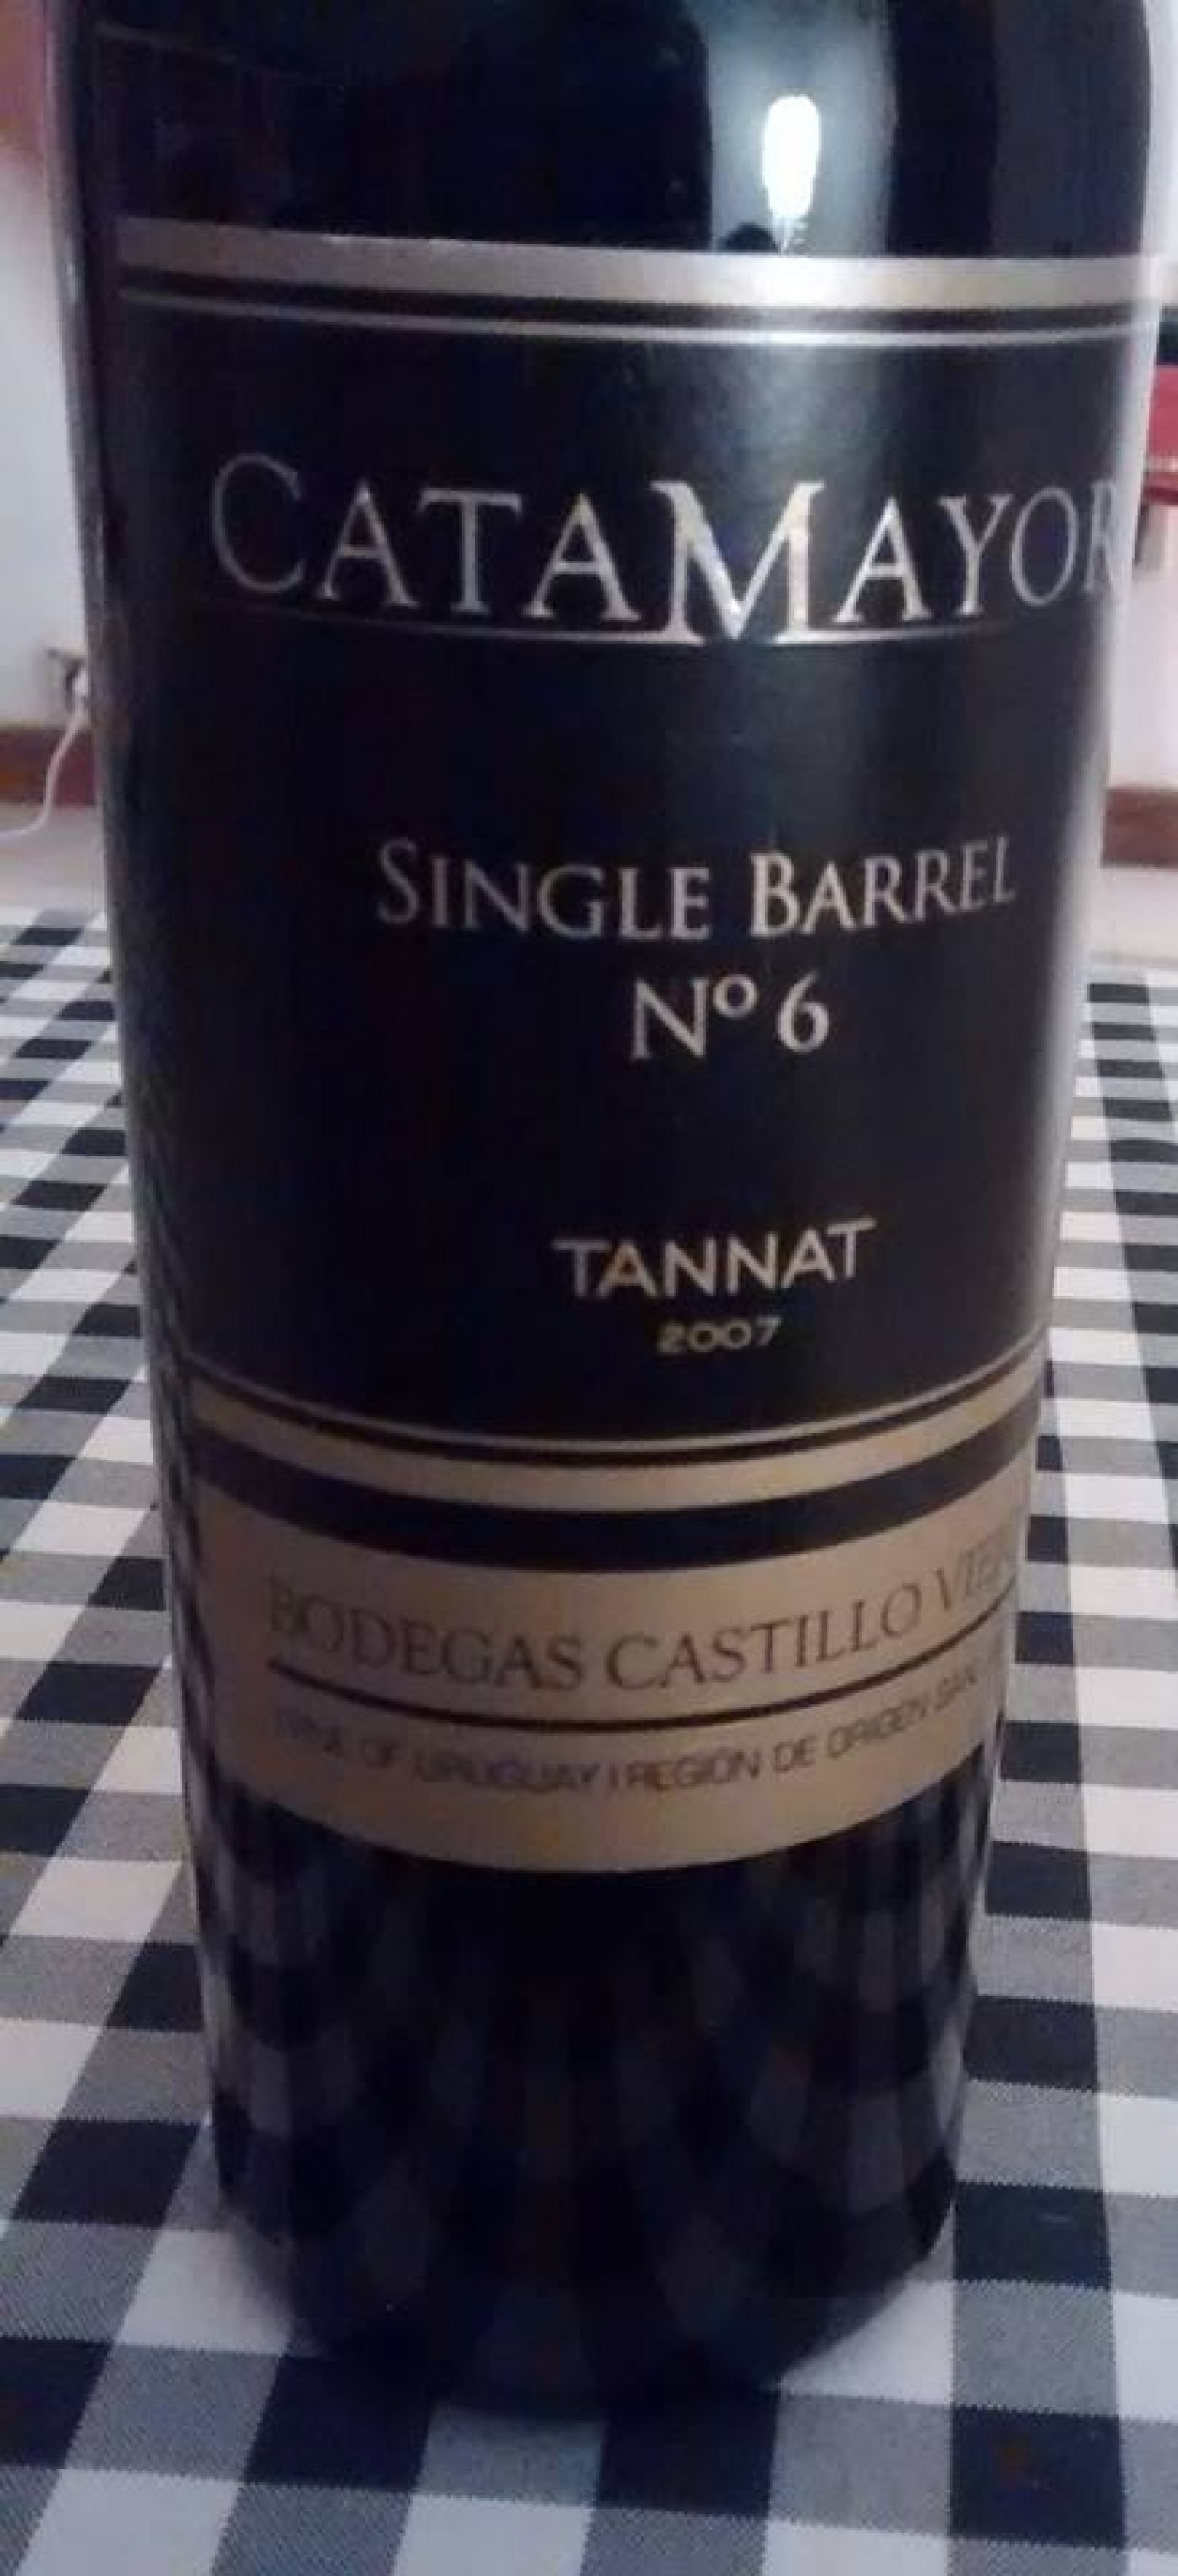 Single Barrel Nº6 Tannat 2007 Catamayor de Bodega Castillo Viejo